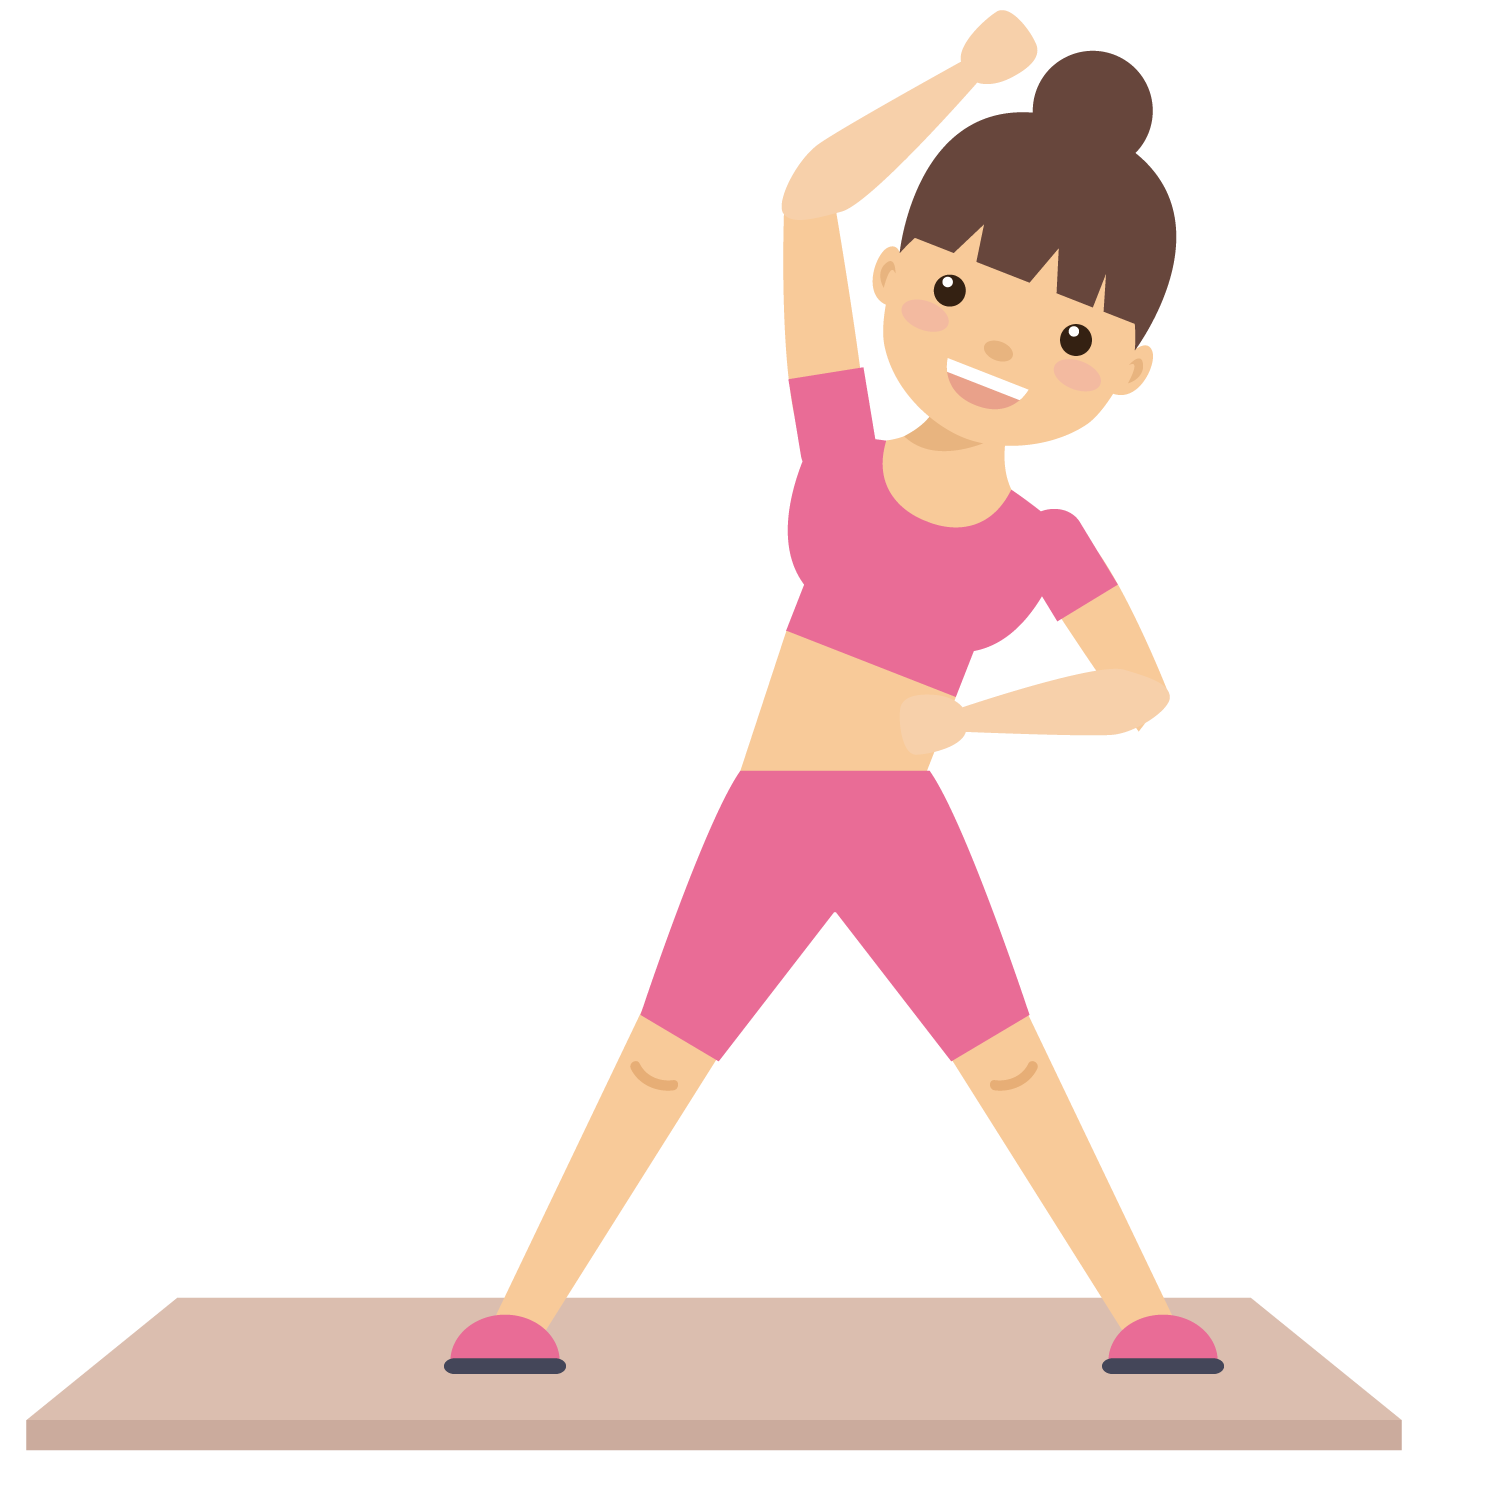 Female fitness clipart clipart images gallery for free download.